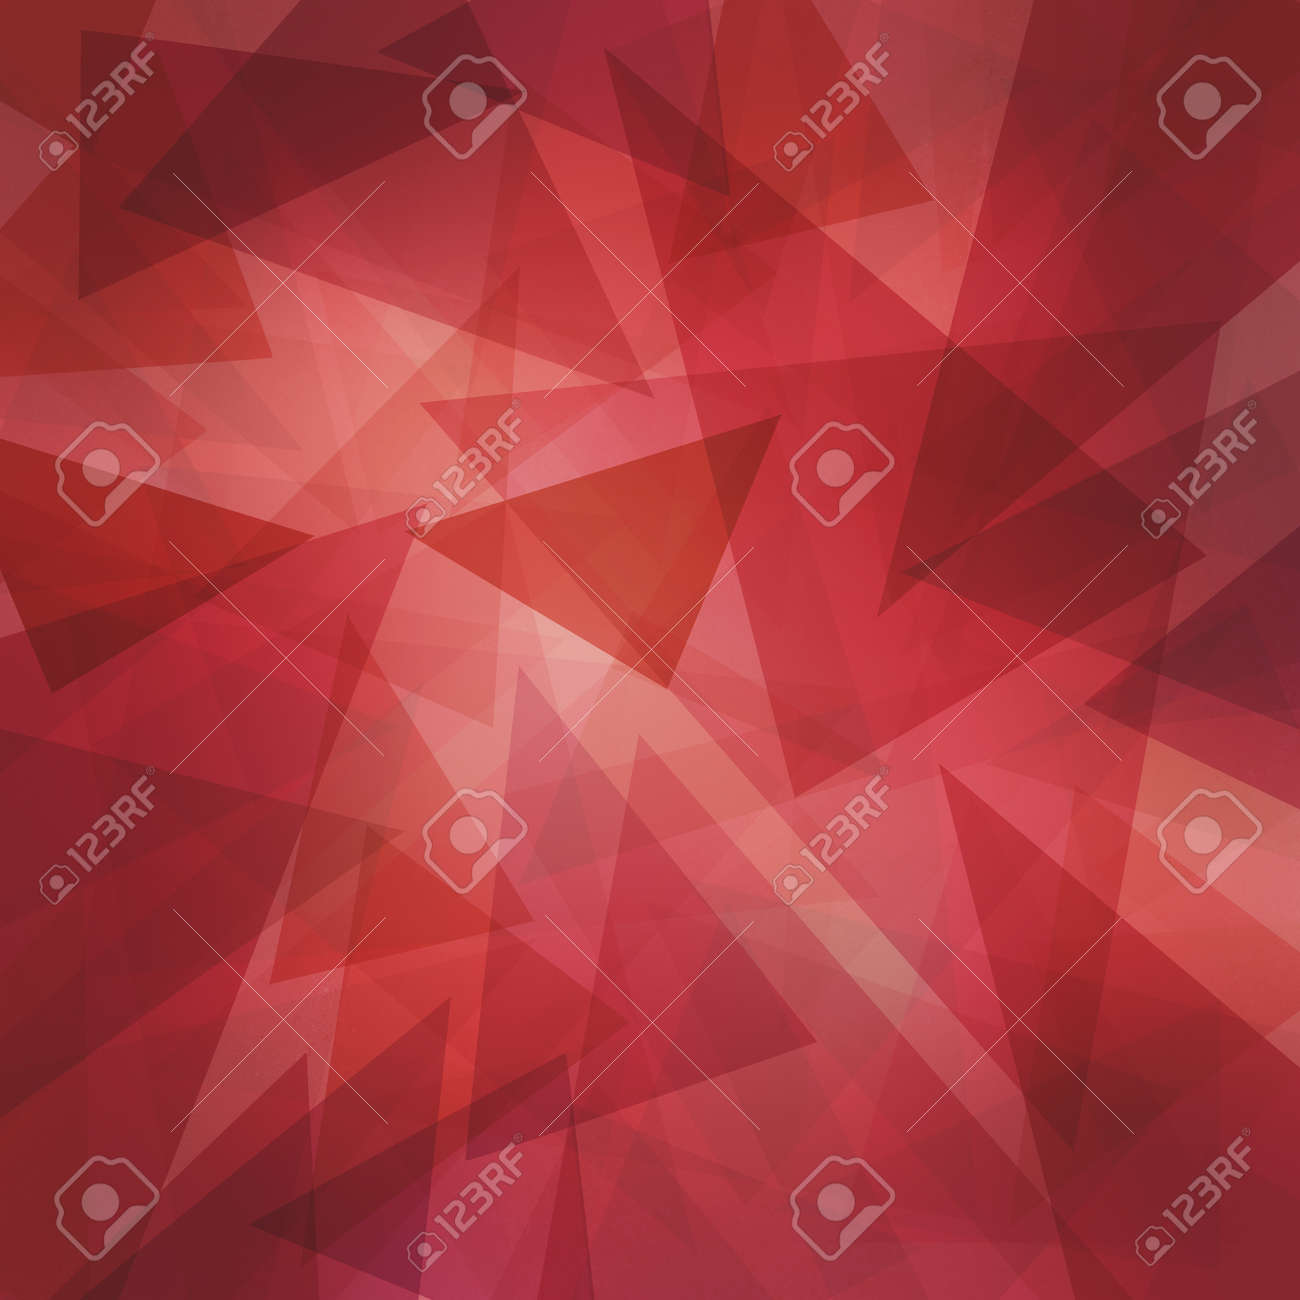 abstract modern red background with layers of floating transparent triangles - 151181609